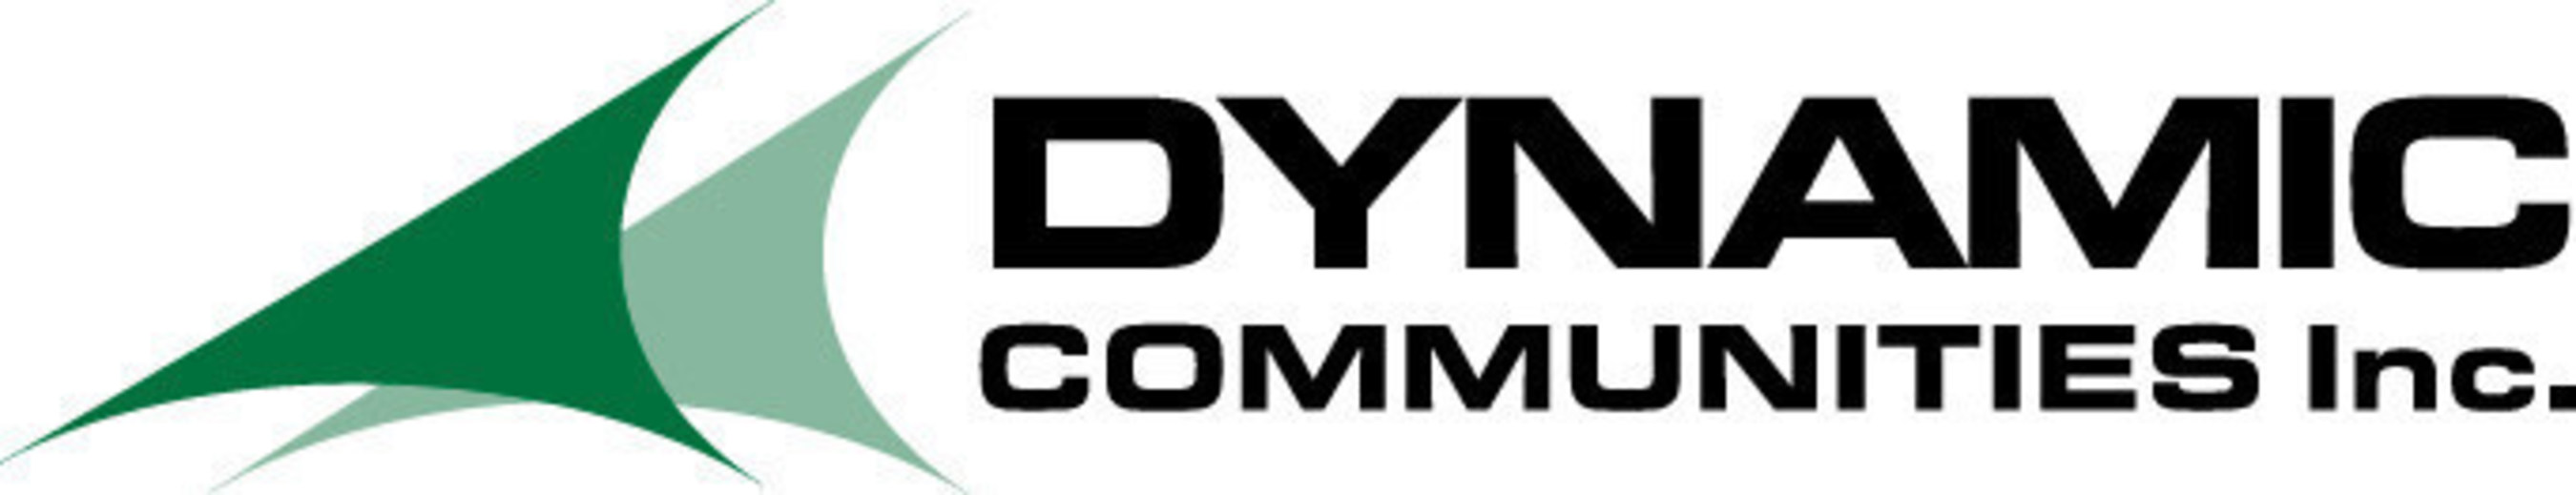 Dynamic Communities, Inc. in Collaboration with Microsoft Business User Forum (mbuf) Announces